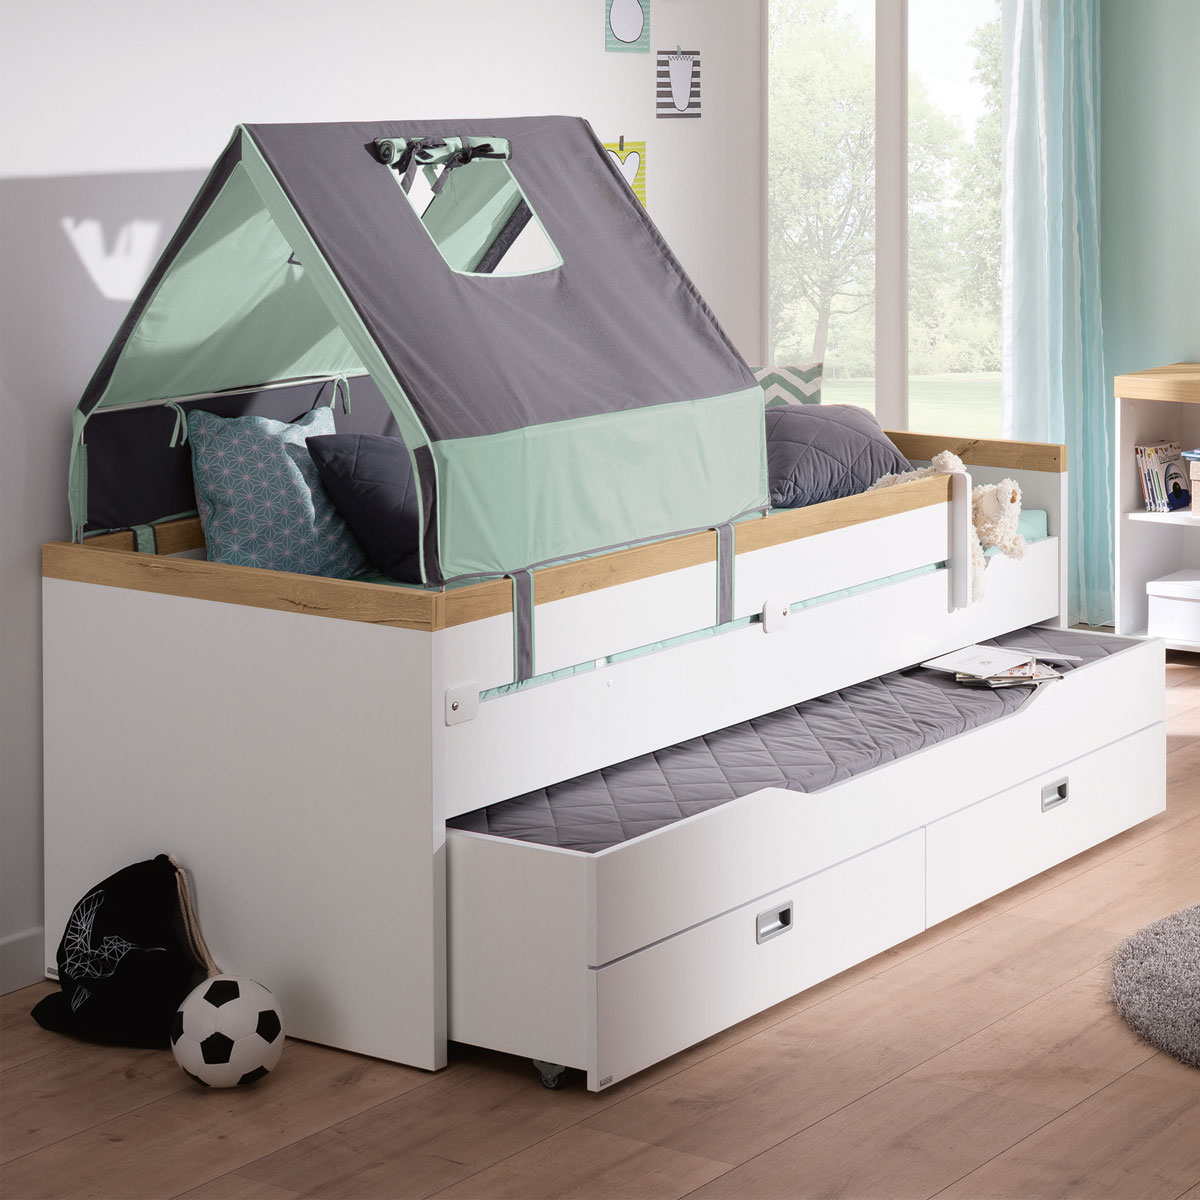 paidi kira kojenbett zu aktionspreisen babyonlineshop. Black Bedroom Furniture Sets. Home Design Ideas